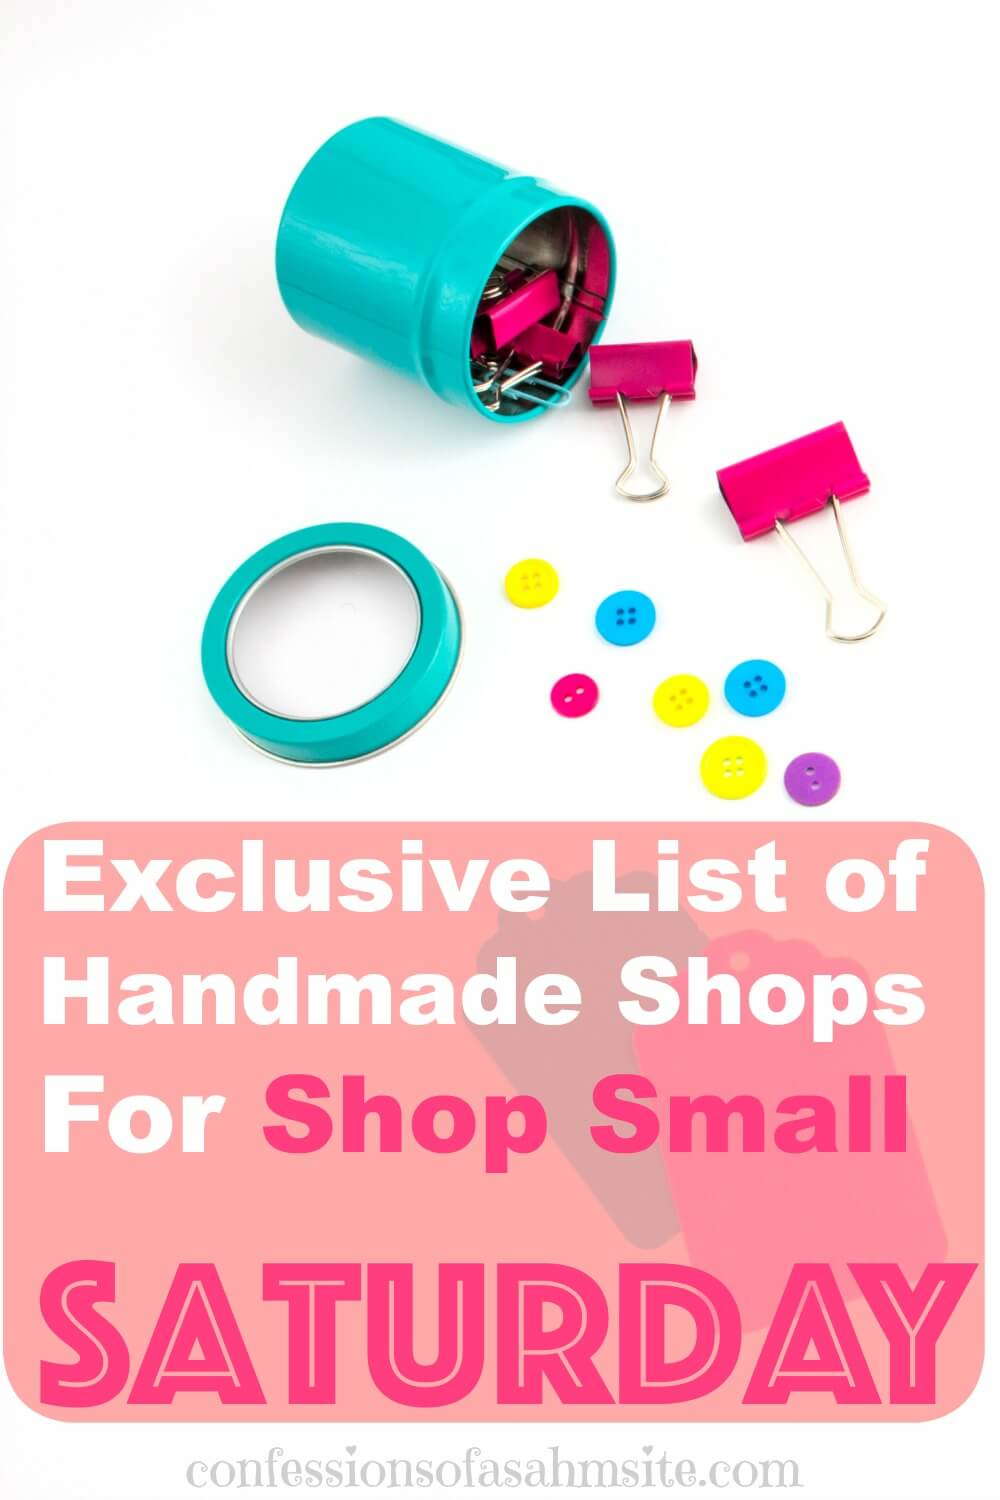 Exclusive List of Handmade Shops for Shop Small